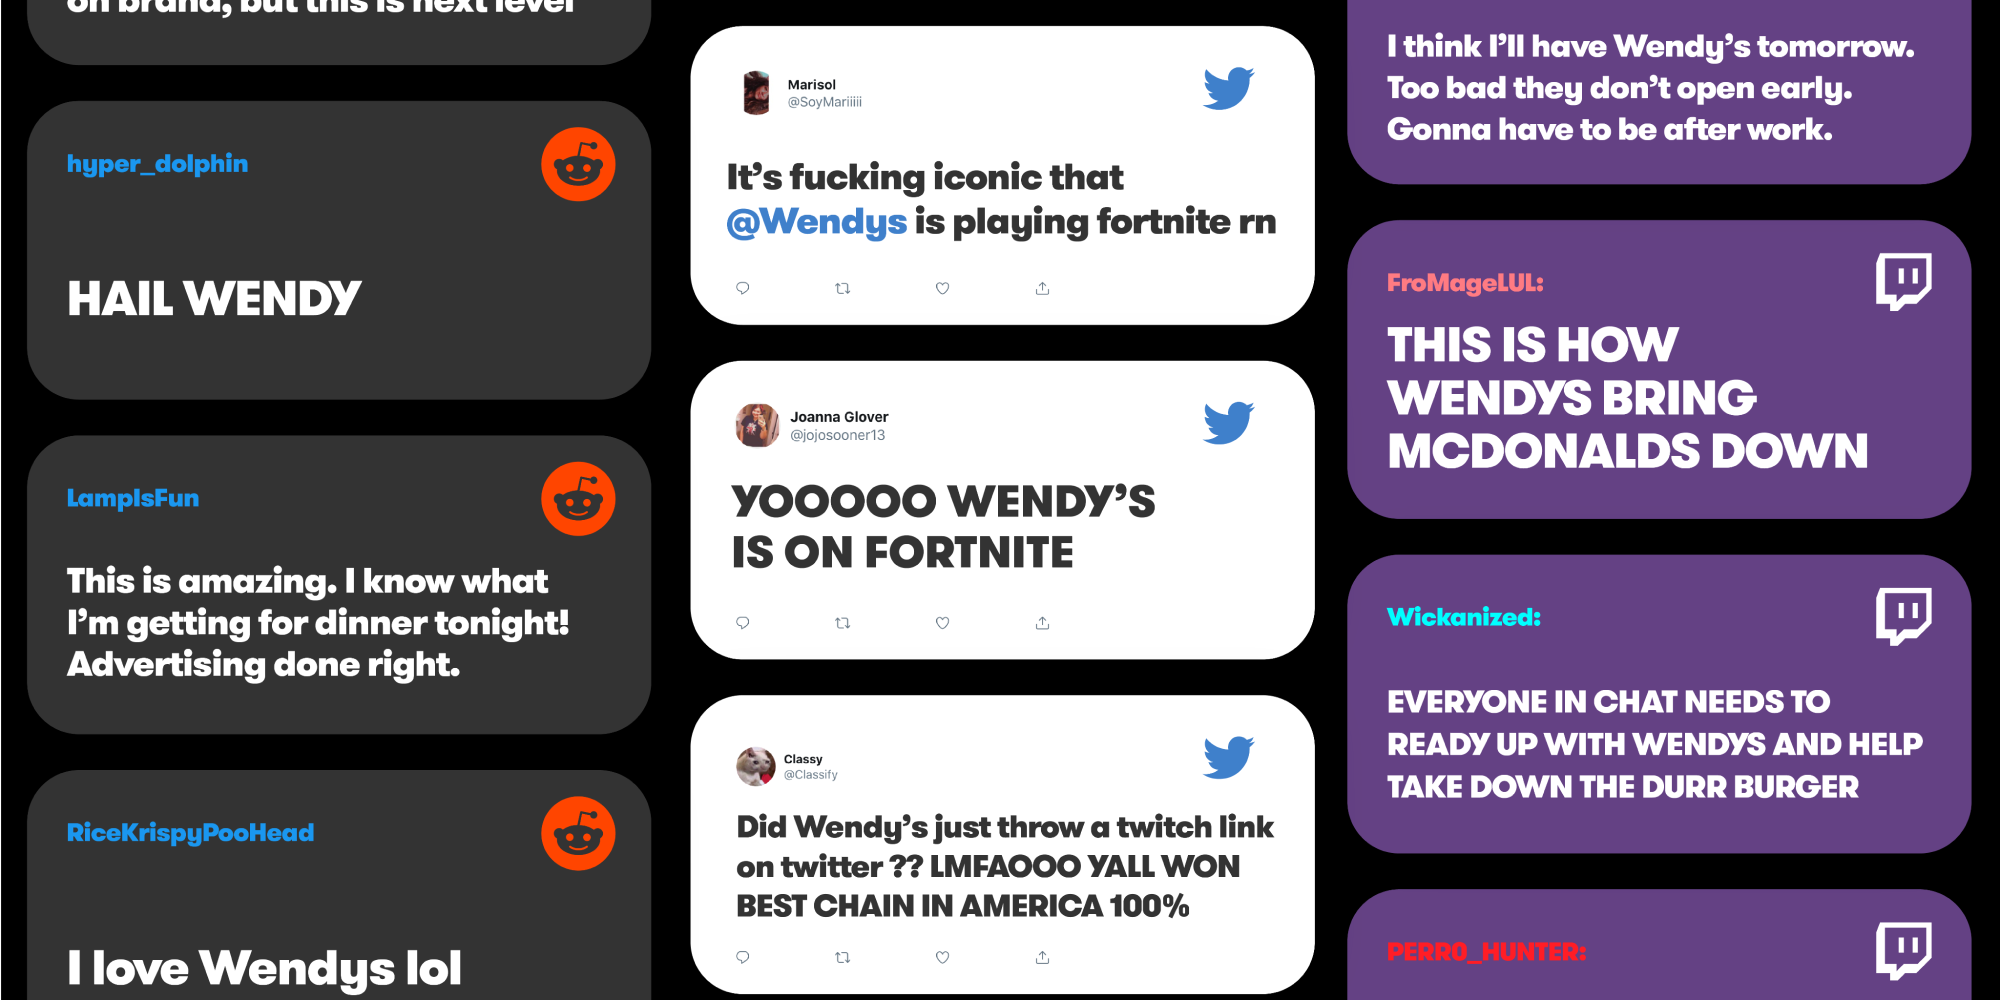 Social comments from reddit, twitter, and twitch about Wendy's streaming